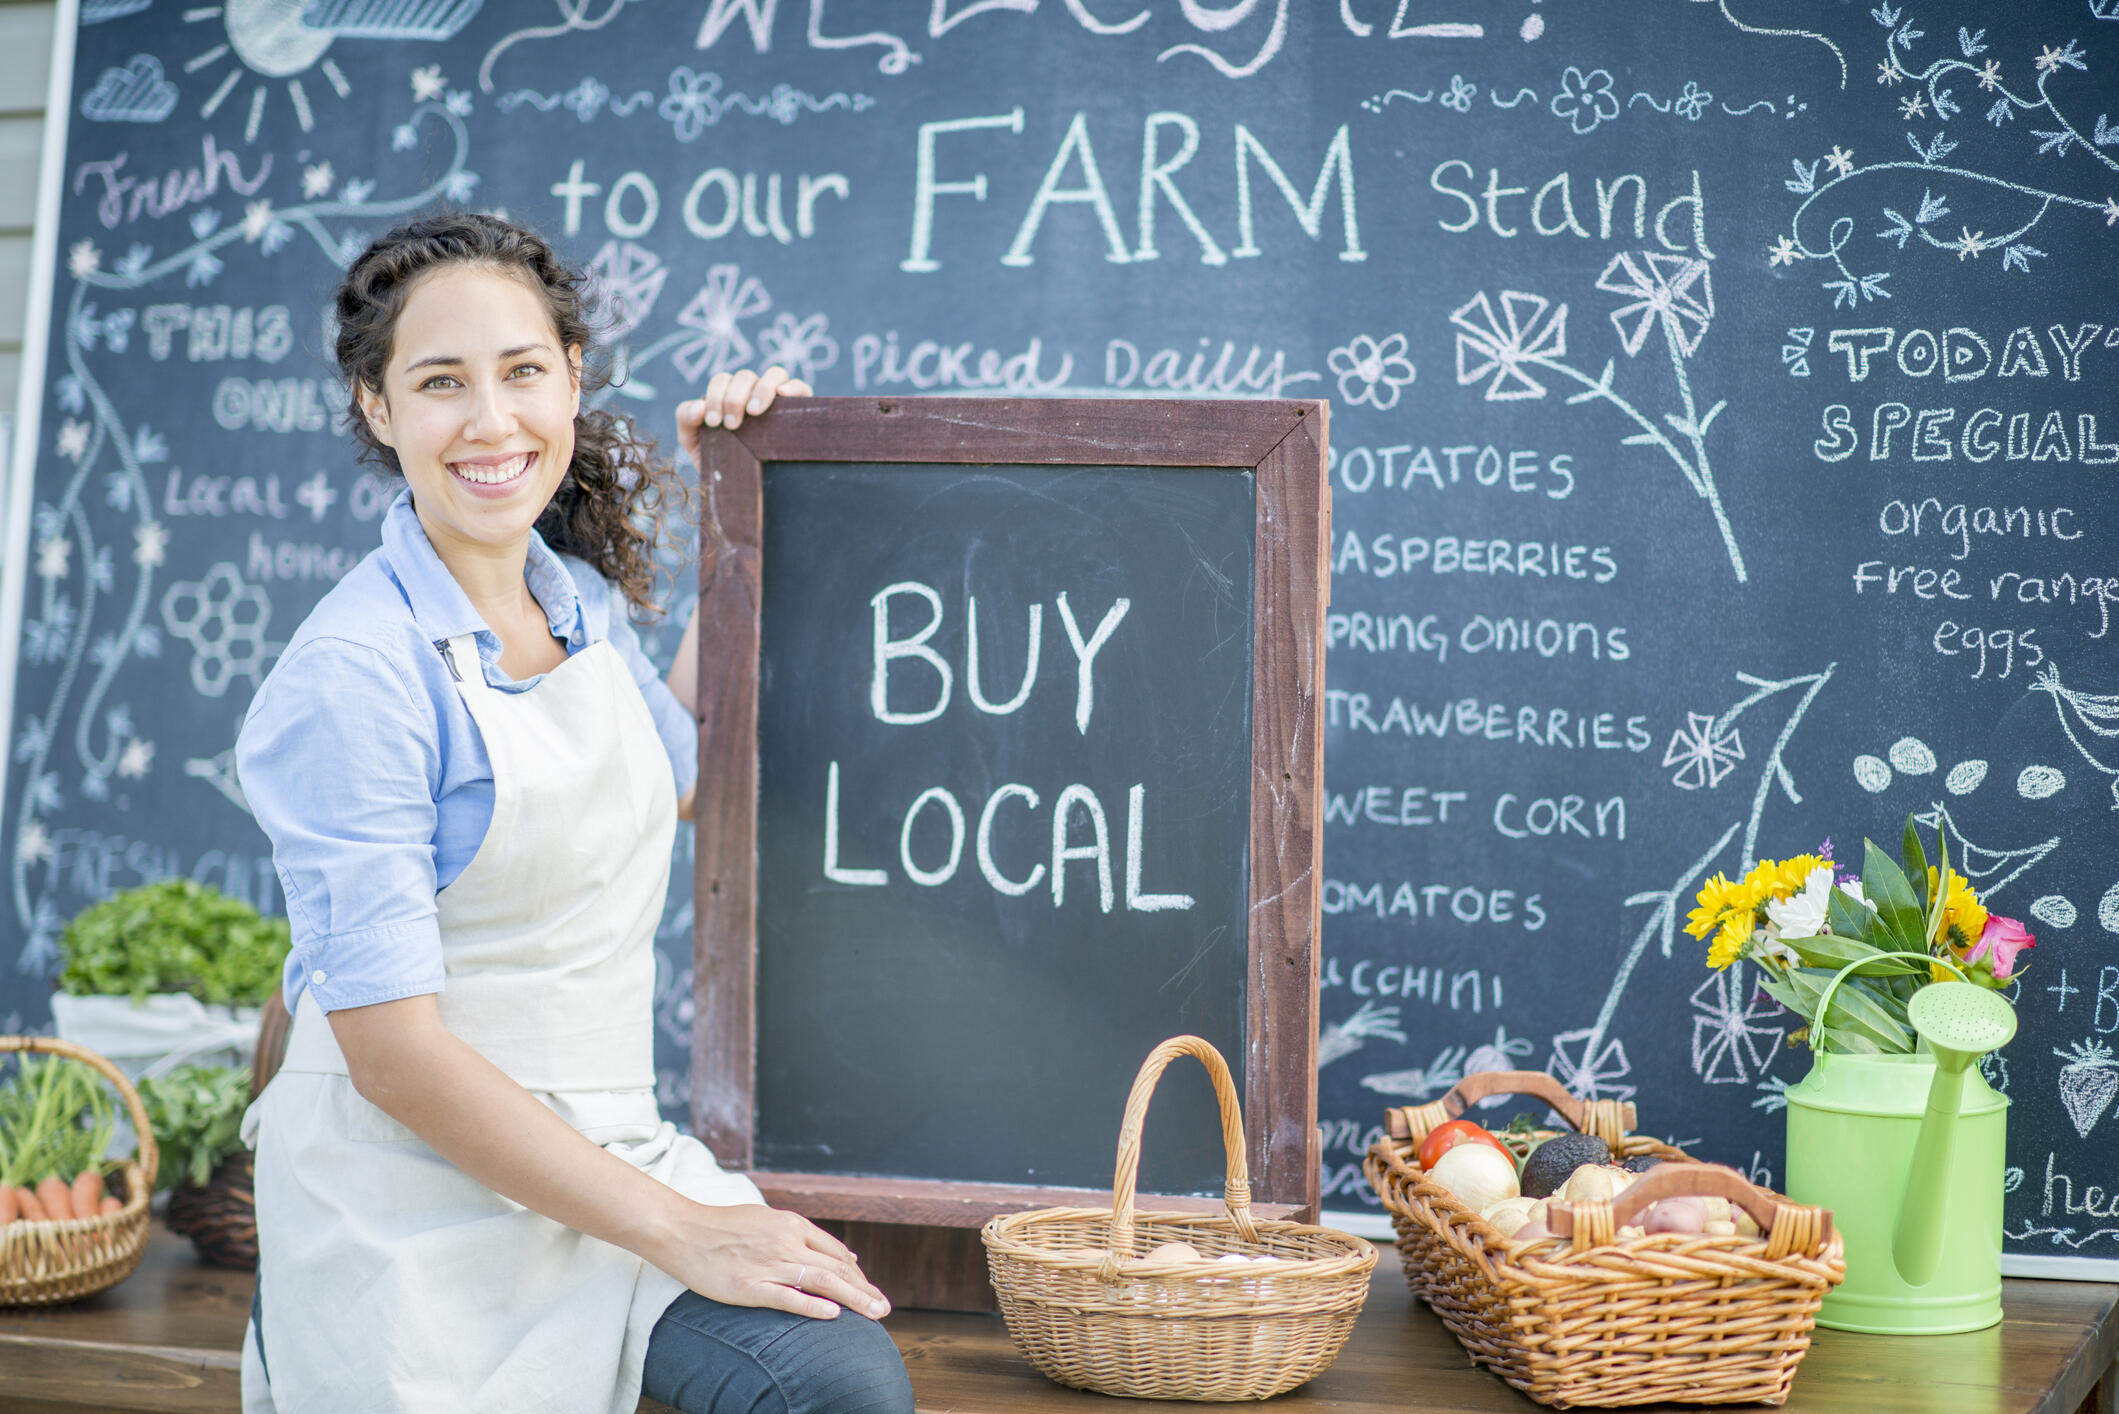 Charlston's Buy Local Month | All Things Charleston - On Air With Ryan Seacrest